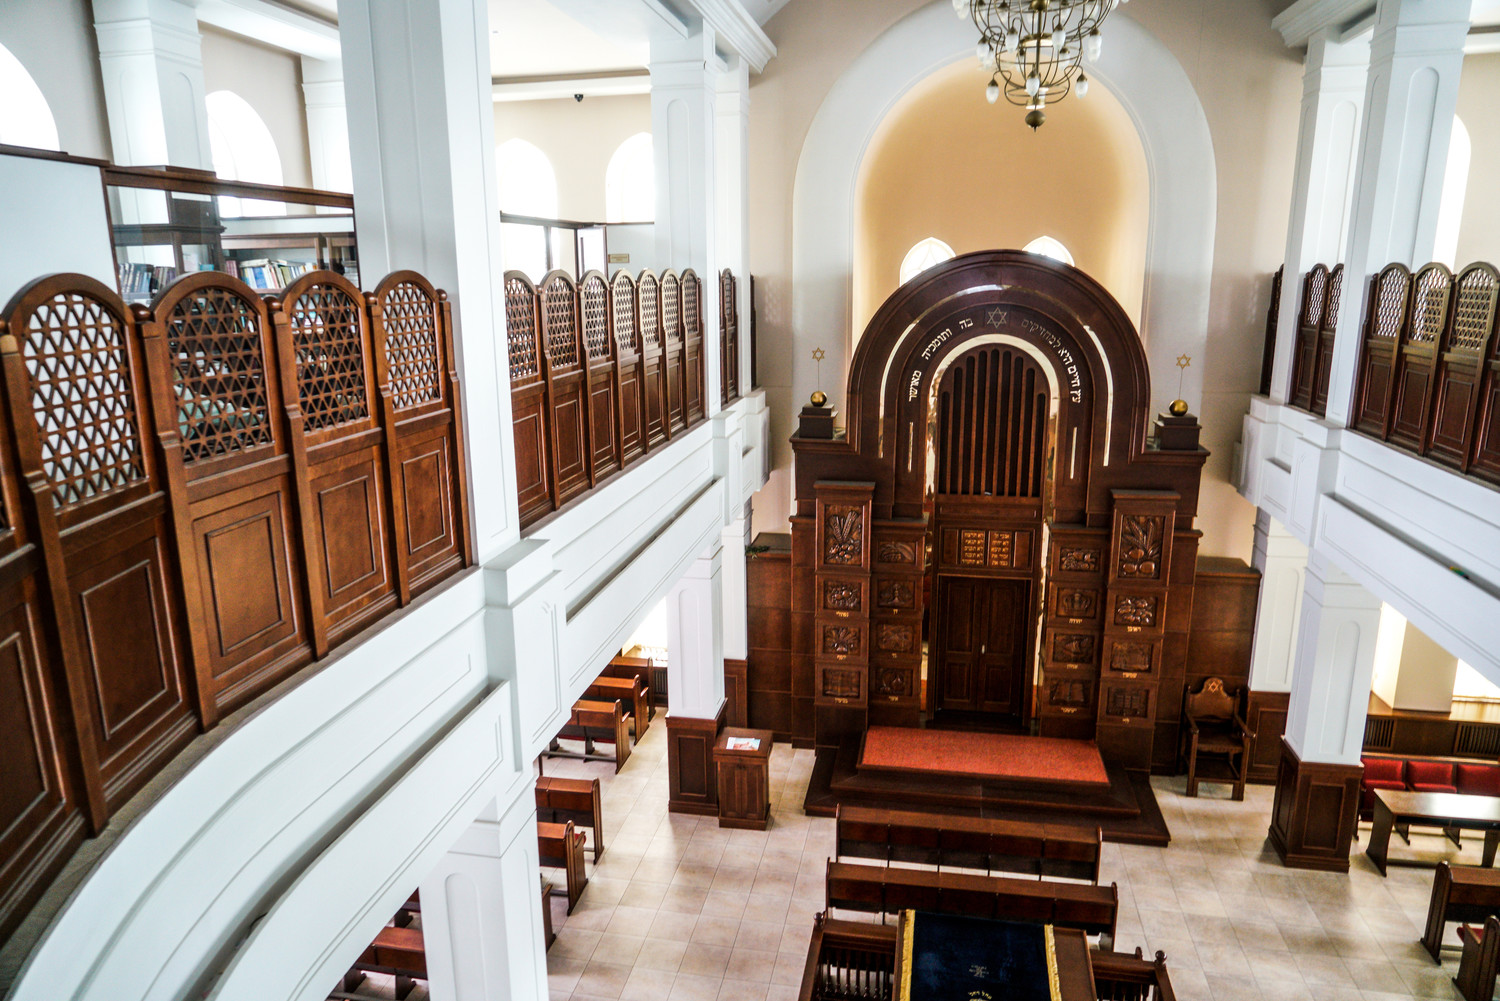 A view of the main prayer hall of the Great Synagogue of Tomsk.